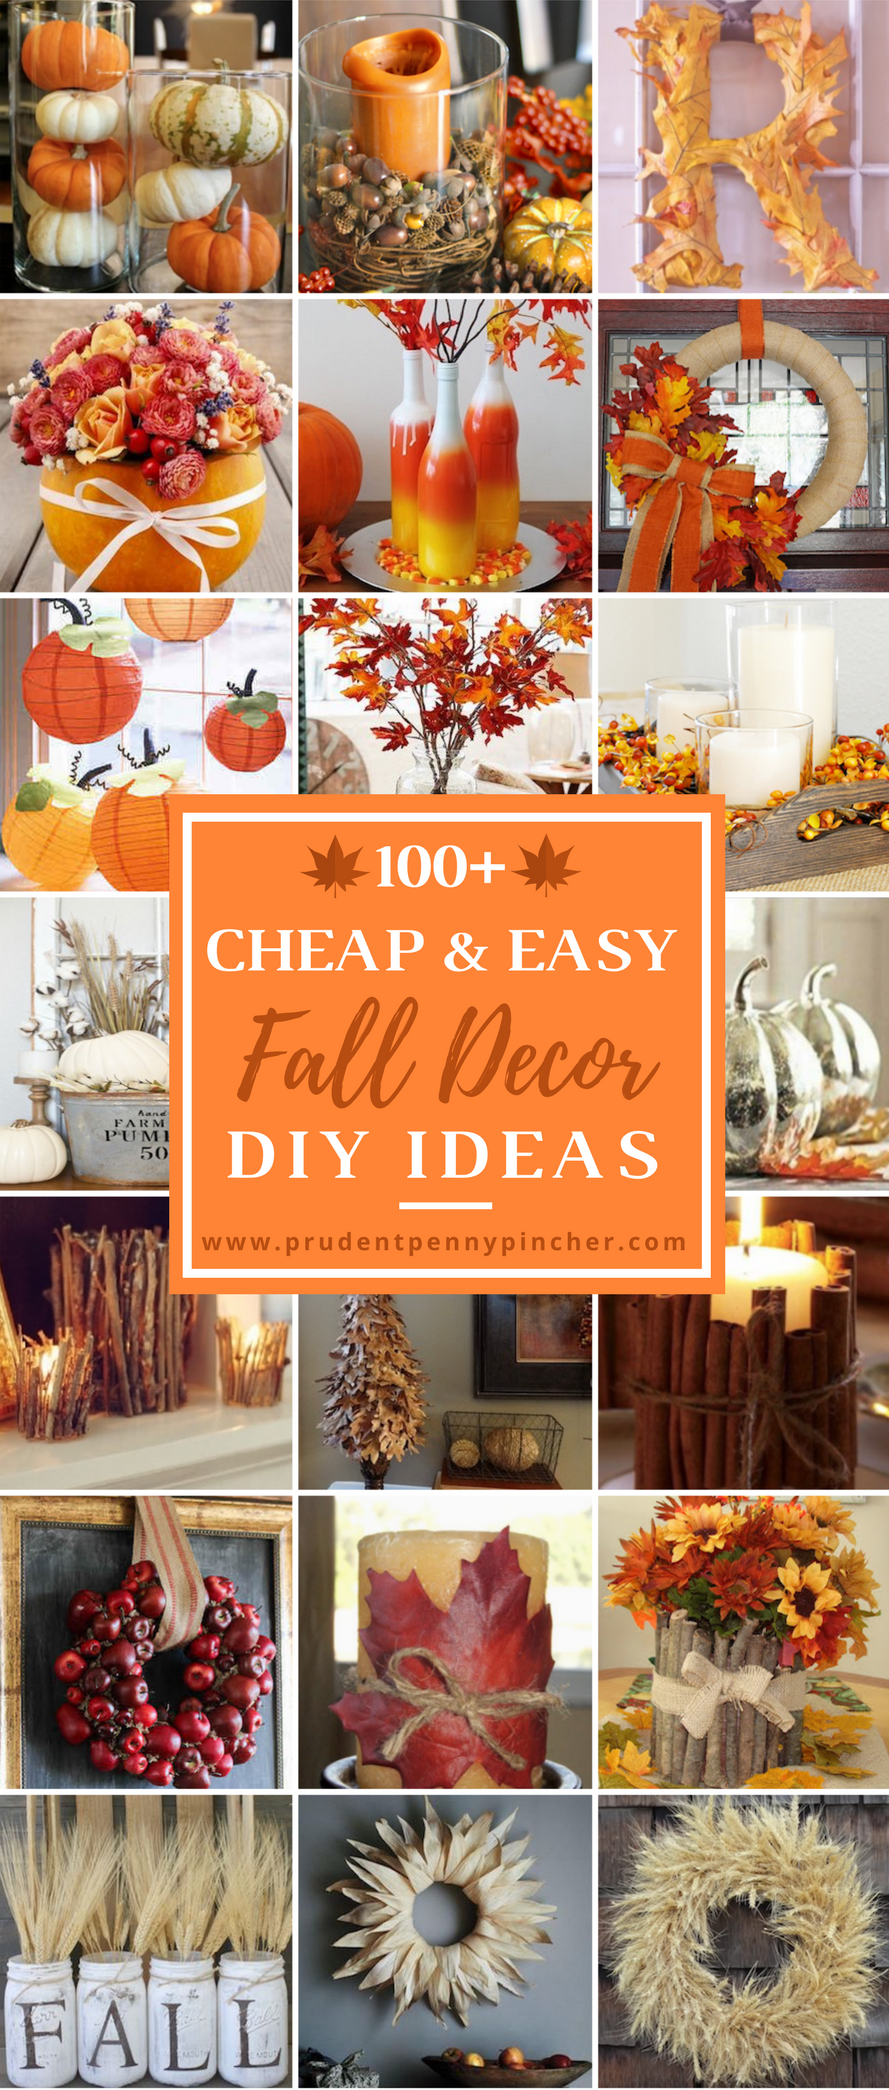 100 Cheap and Easy Fall Decor DIY Ideas - Prudent Penny Pincher